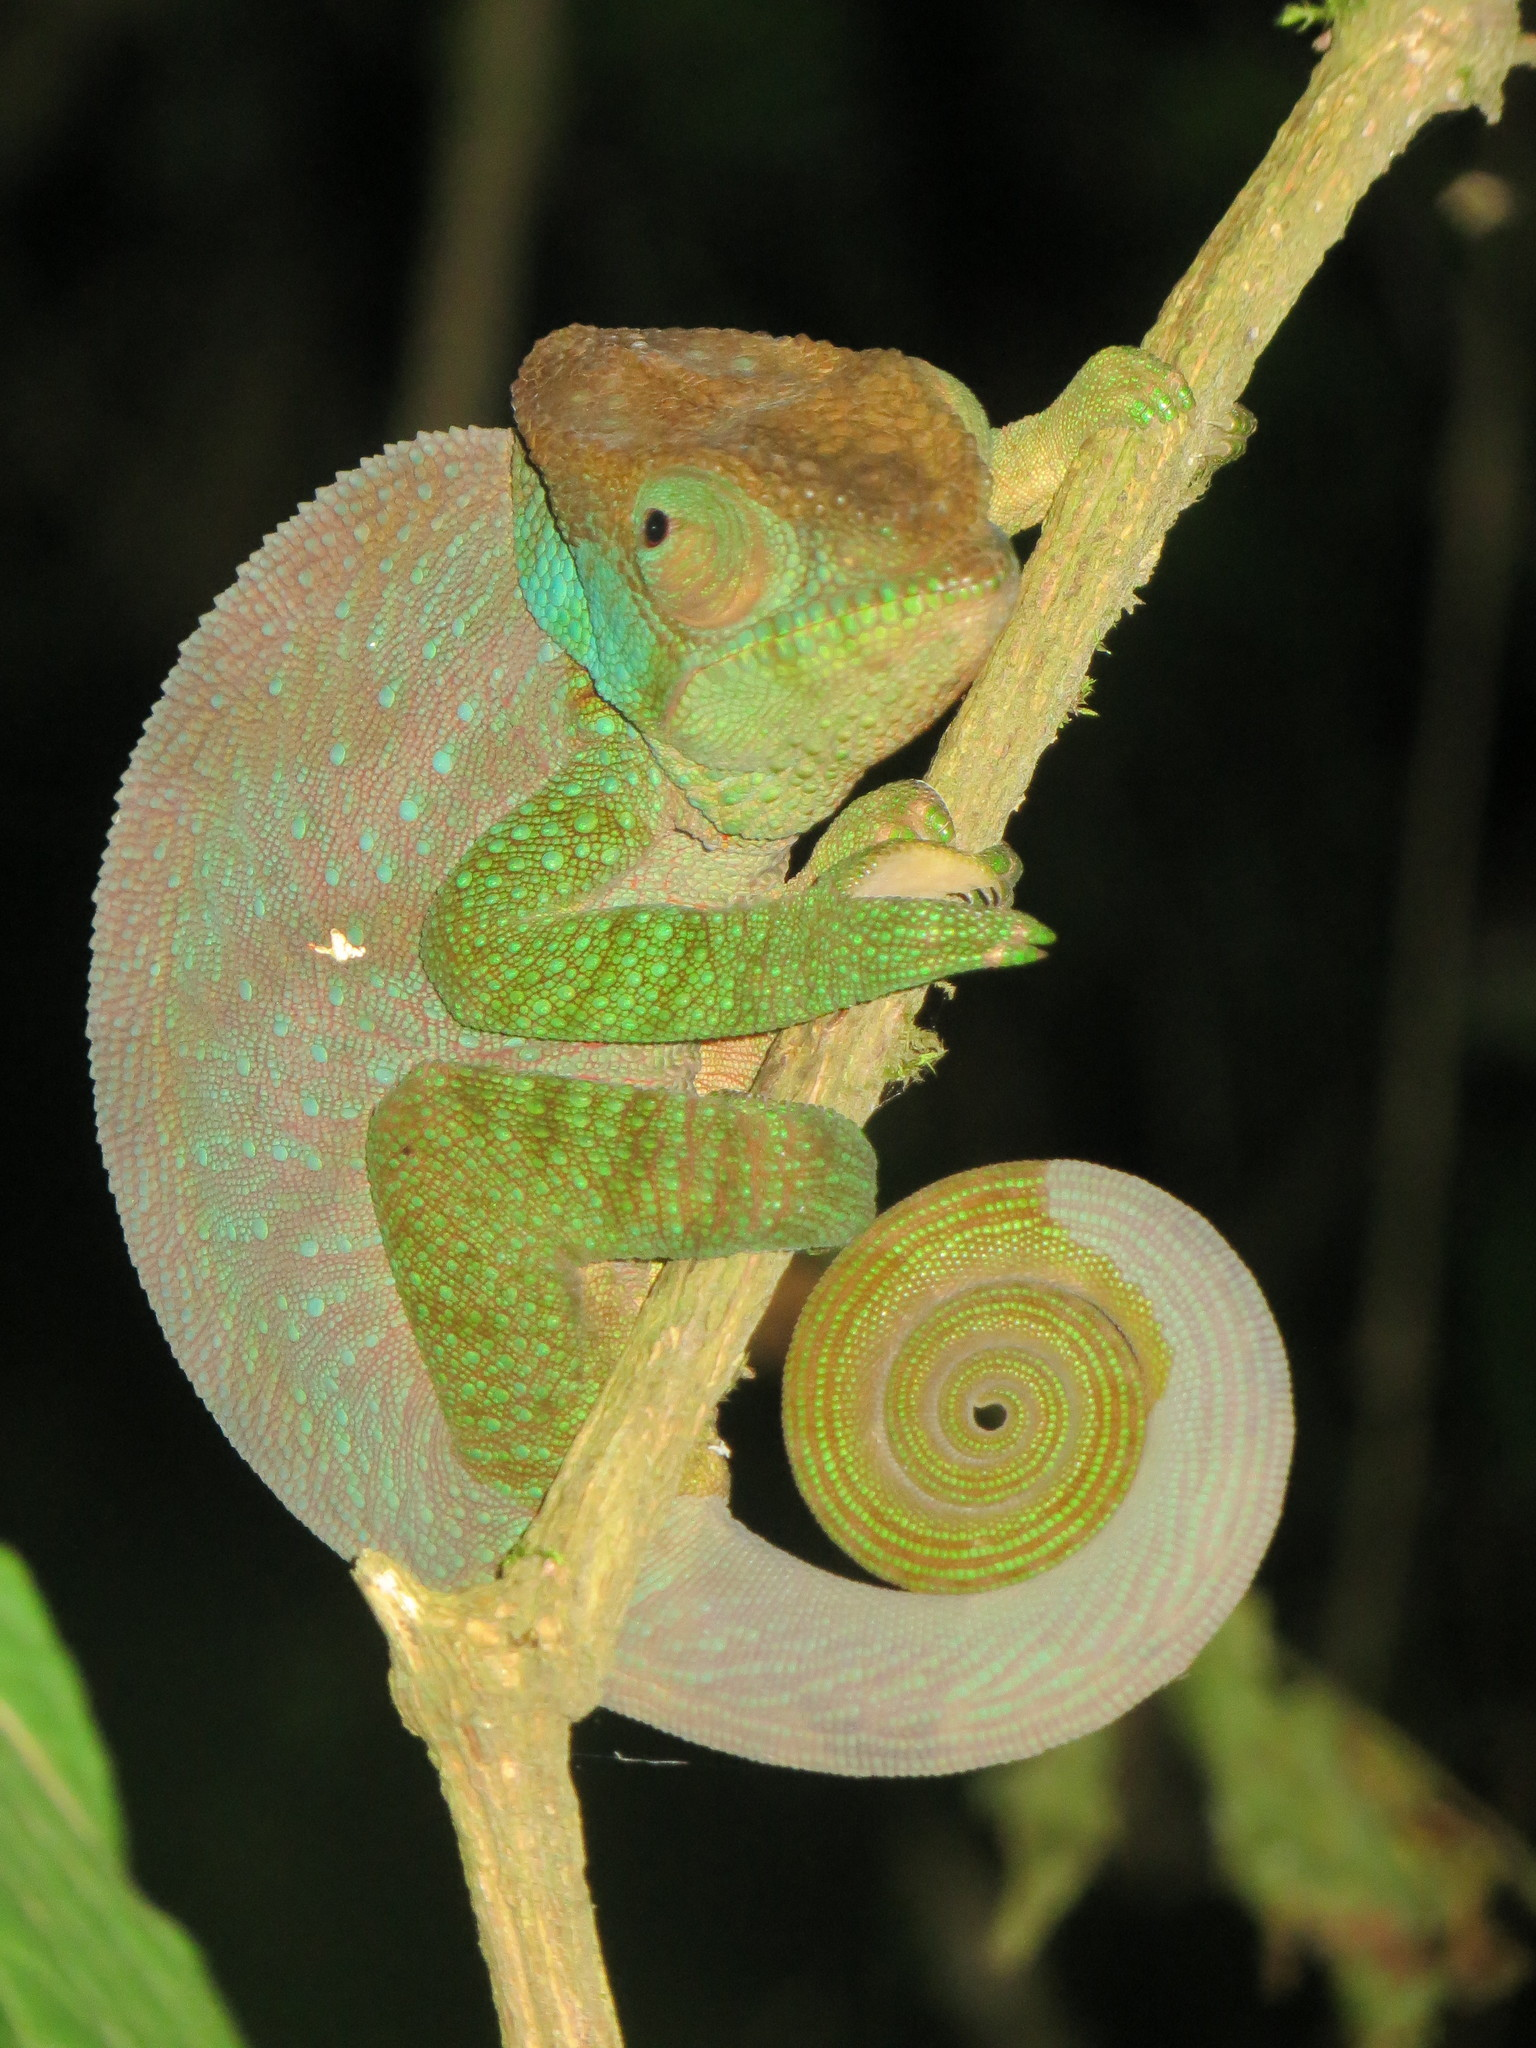 Image of O'Shaughnessy's Chameleon